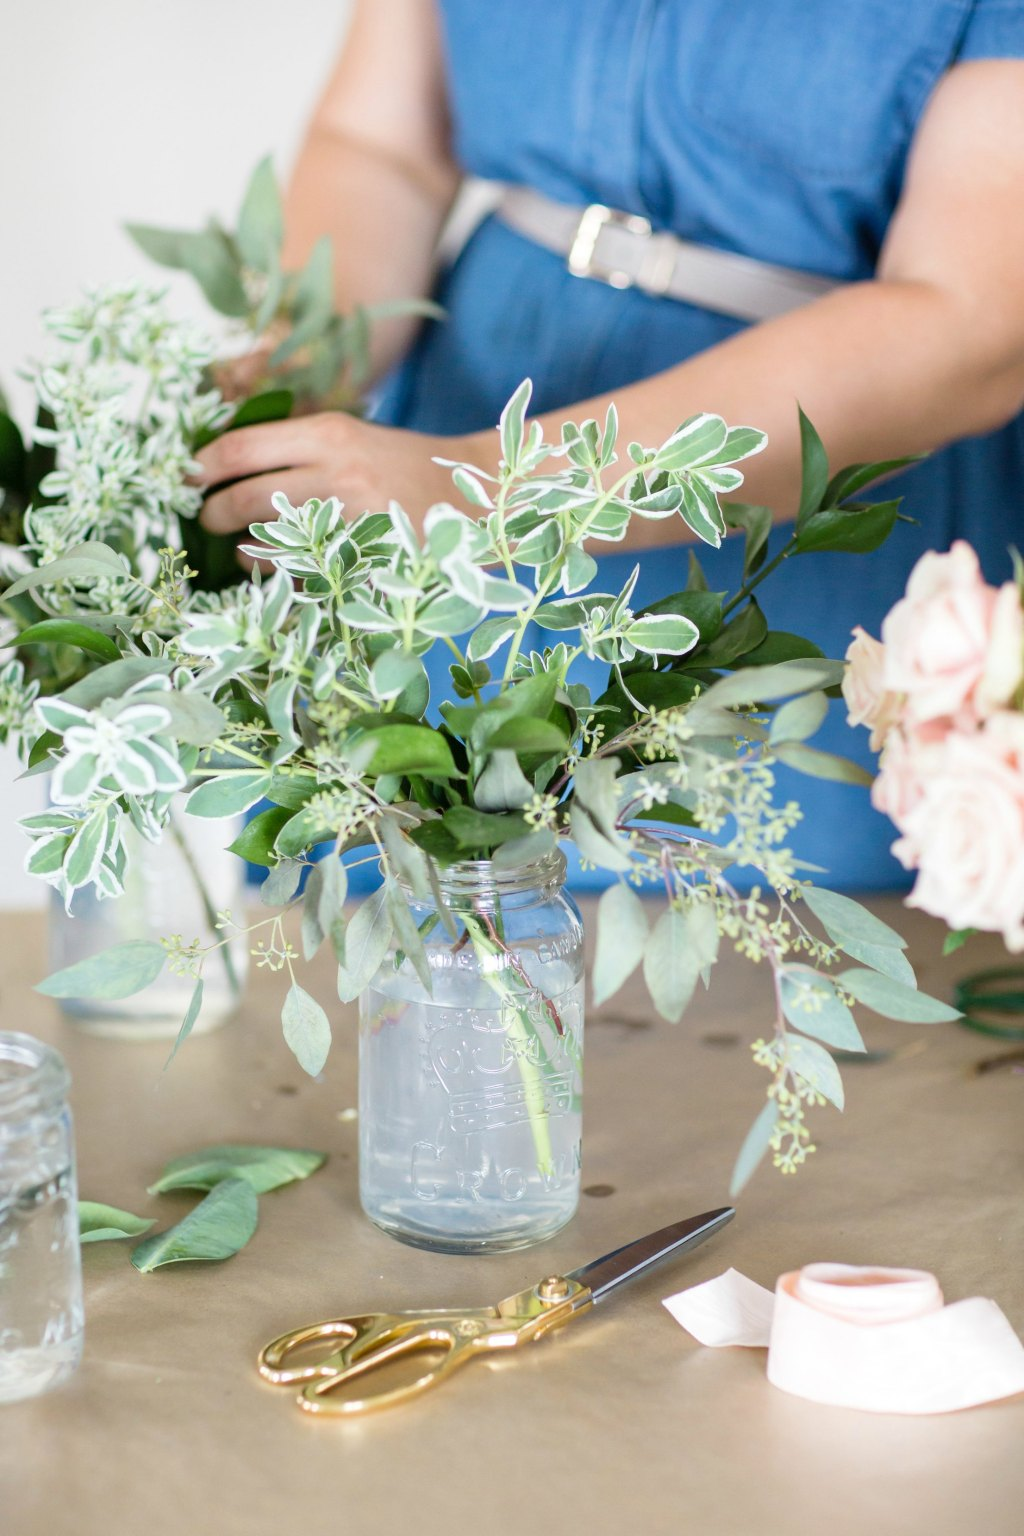 how-to-style-a-simple-flower-arrangement-rose-city-style-guide-bourbon-rose-floral-design-co-lifestyle-canadian-blog-8